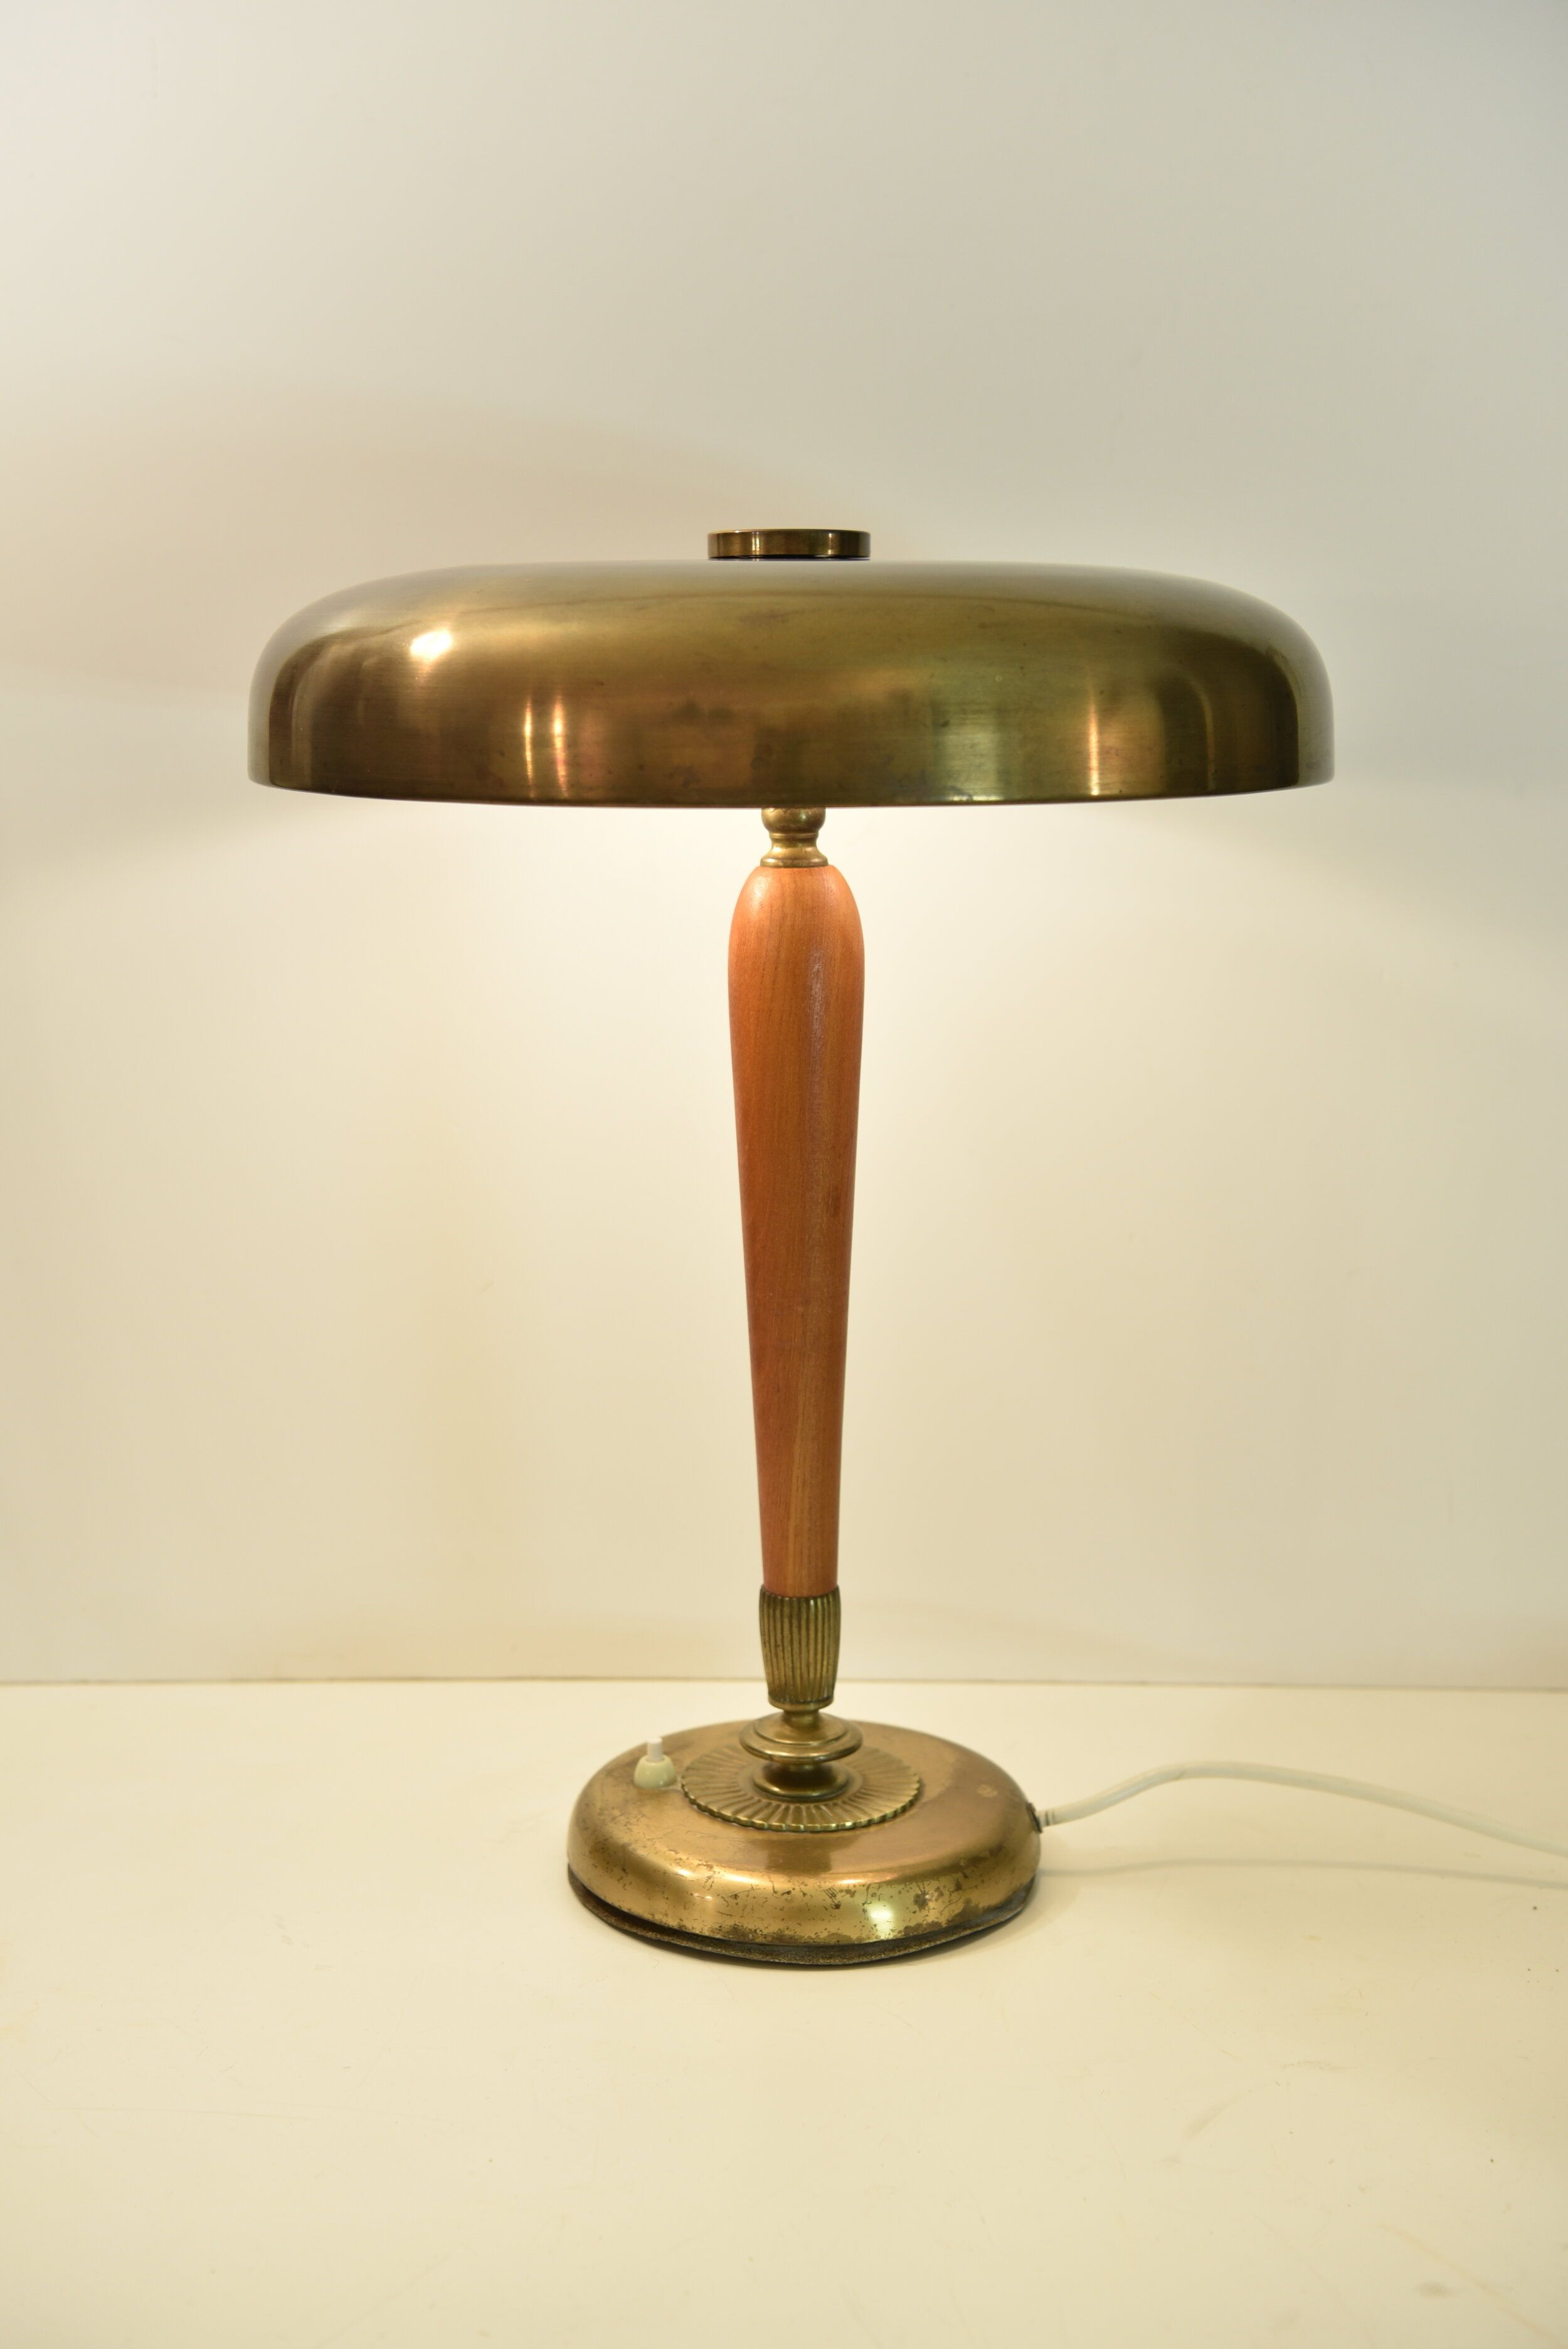 Large Swedish Art Deco Oak And Brass Table Lamp By Bohlmarks 1930 S In 2020 Table Lamp Brass Table Lamps Art Deco Table Lamps